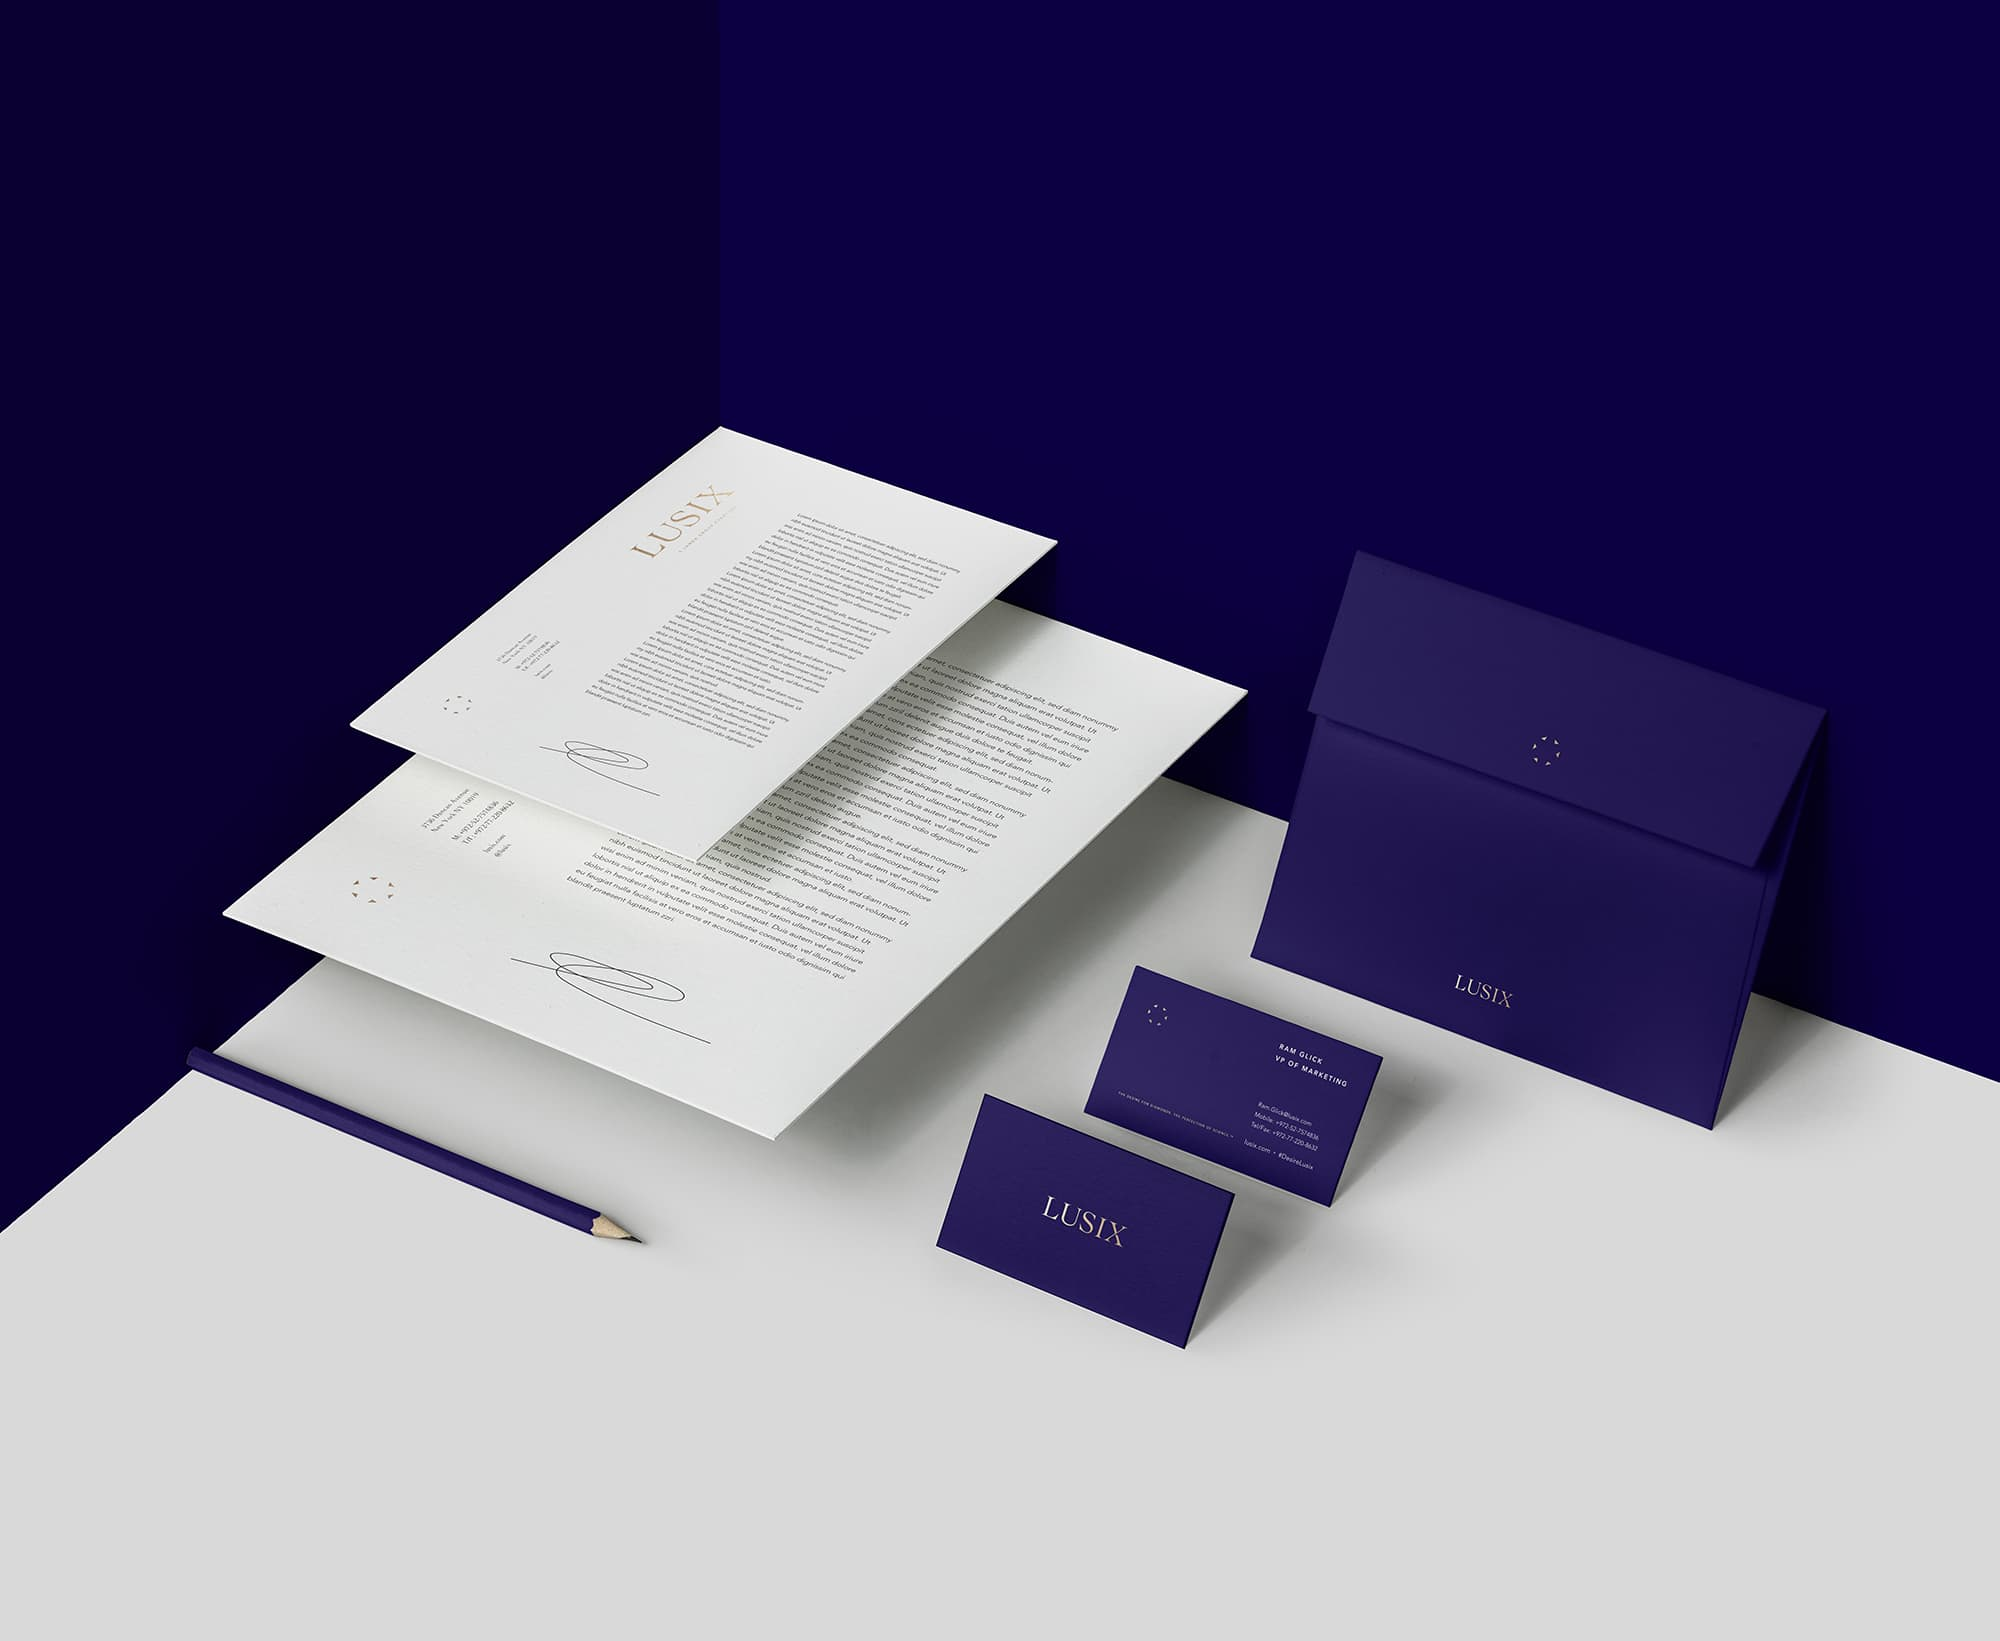 Lusix Diamonds stationery design by VMGROUPE